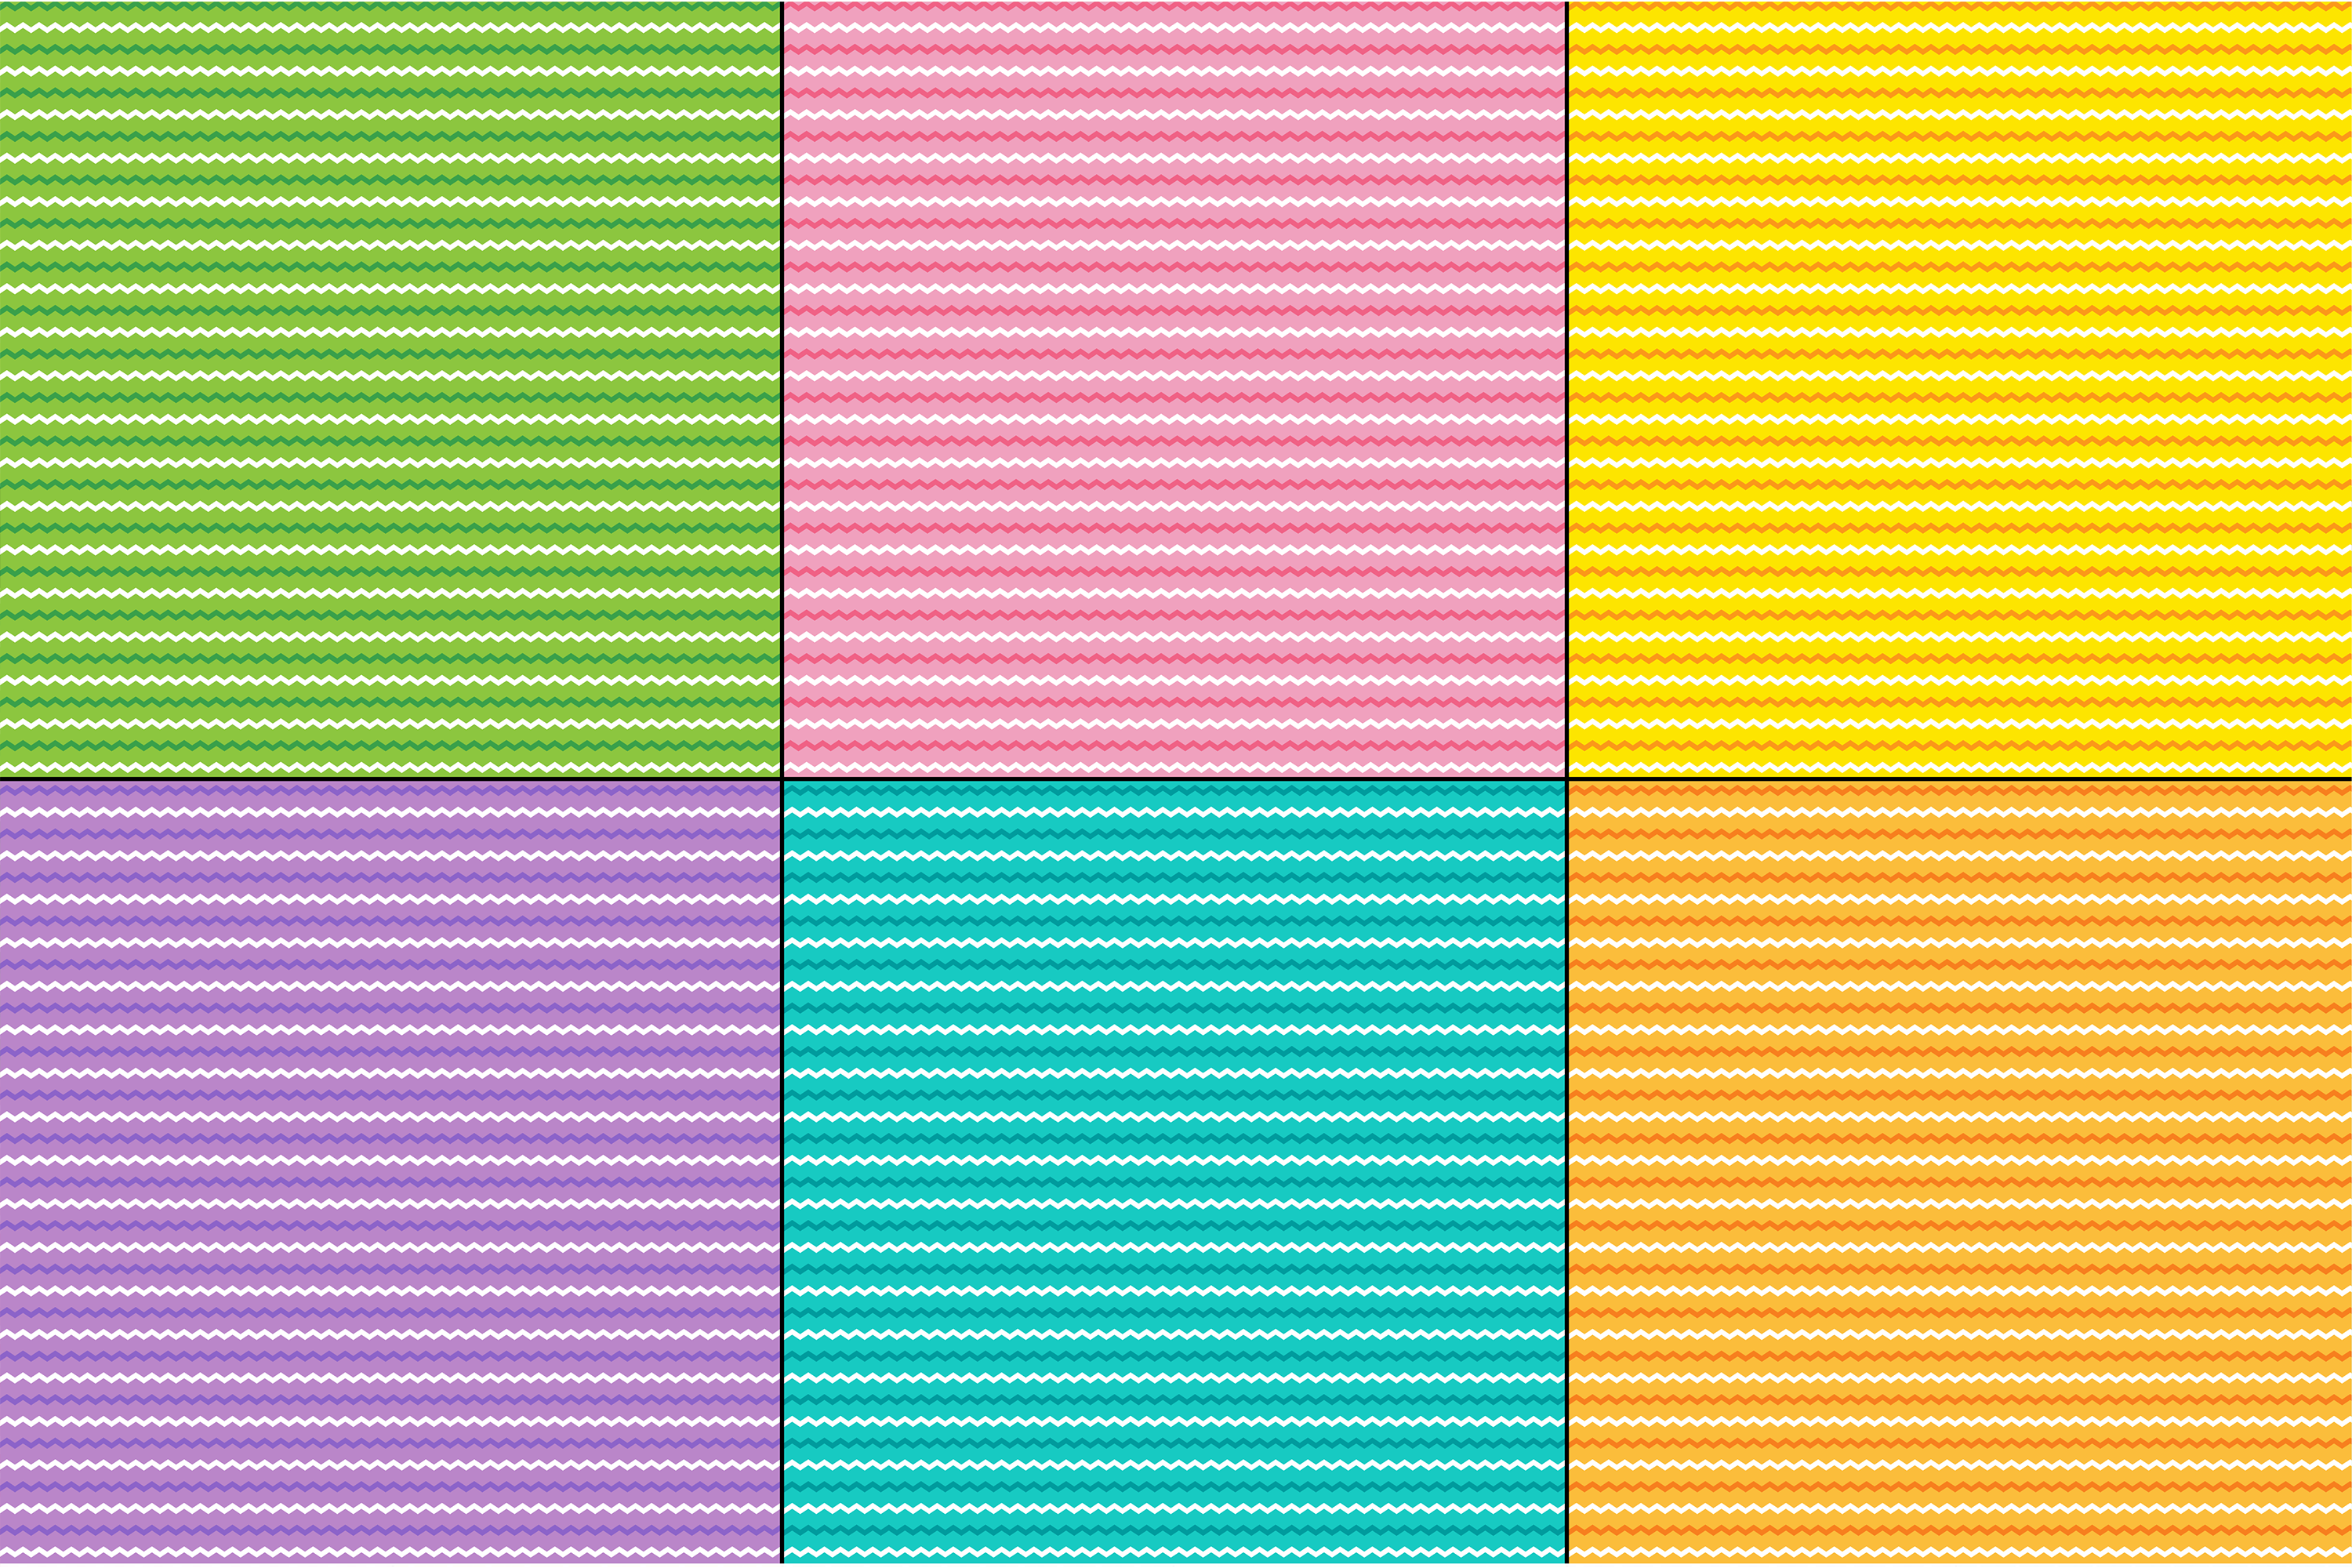 Easter Plaids, Stripes & Polka Dots example image 4